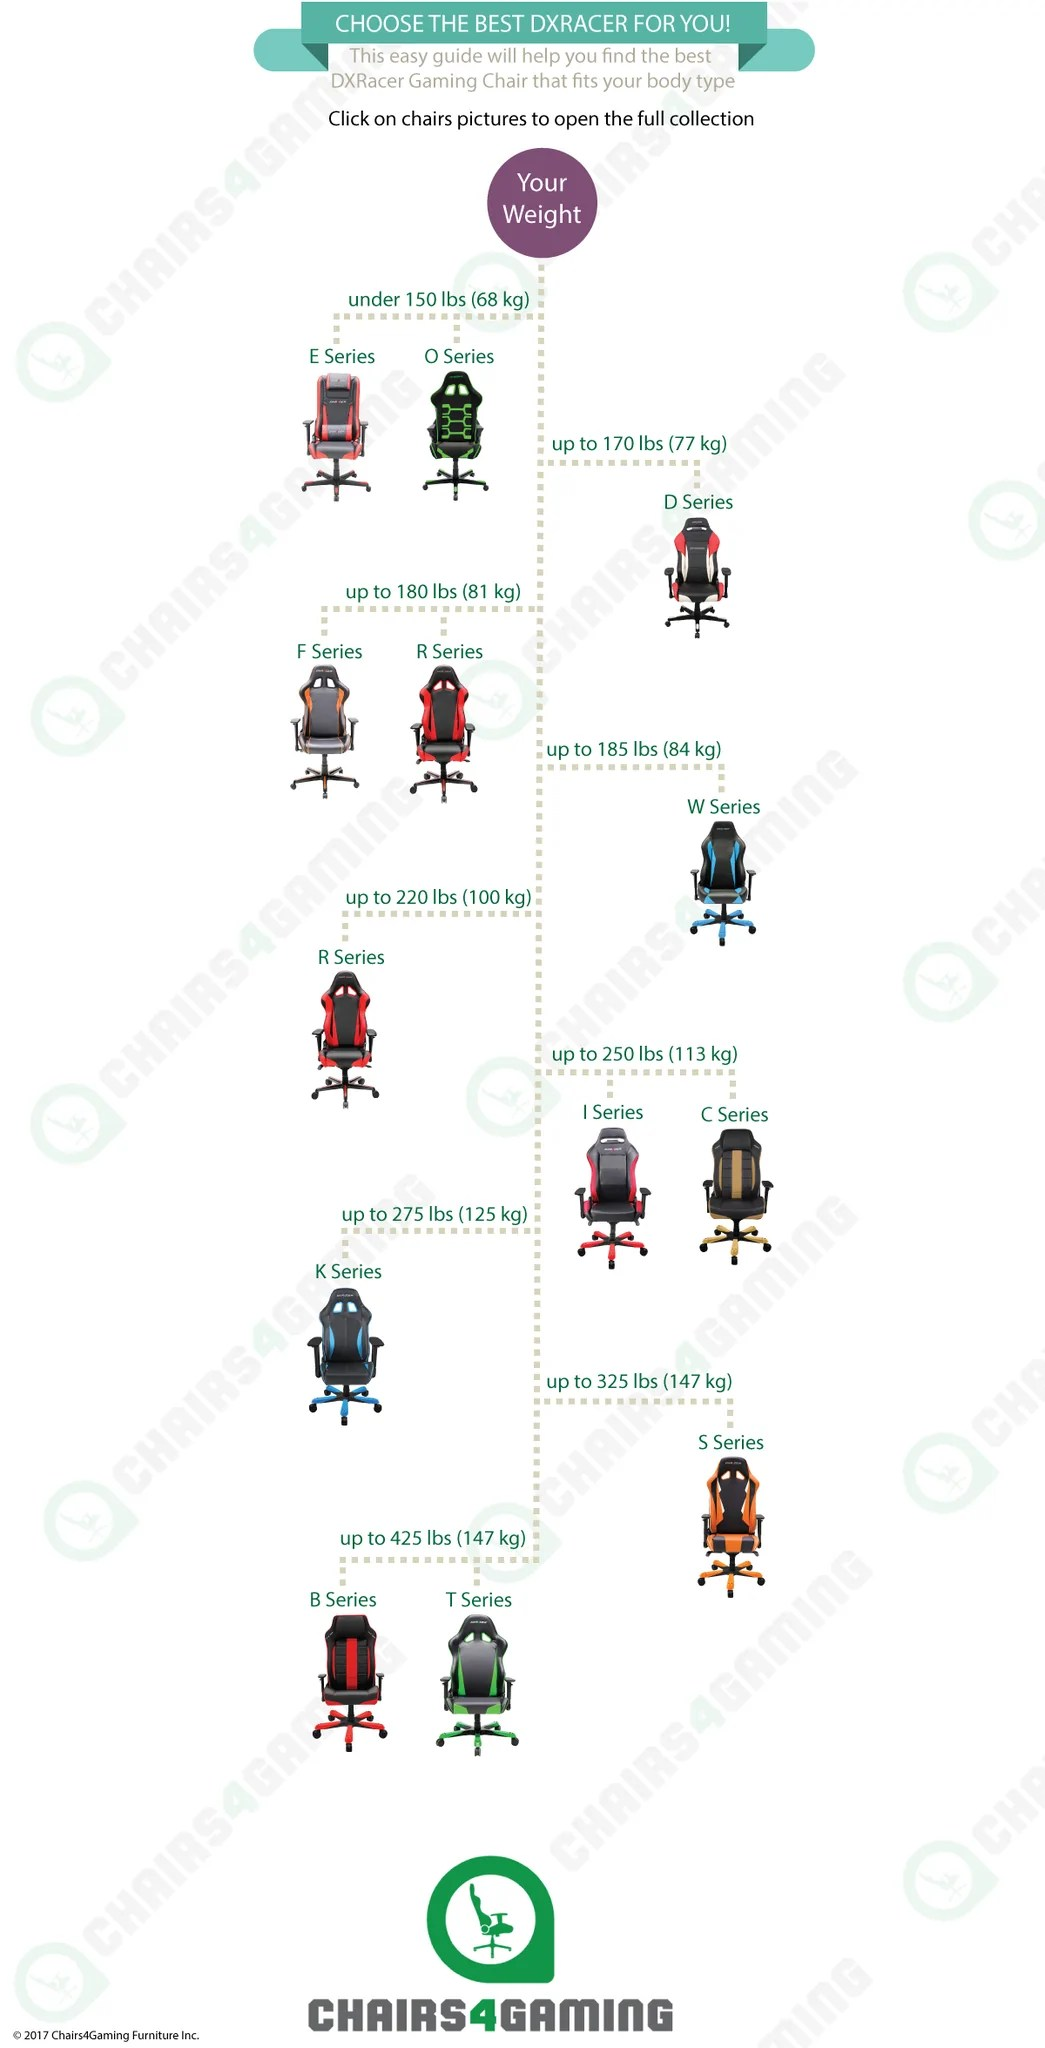 chairs 4 gaming wedding chair covers harrogate infographic dxracer guide  chairs4gaming